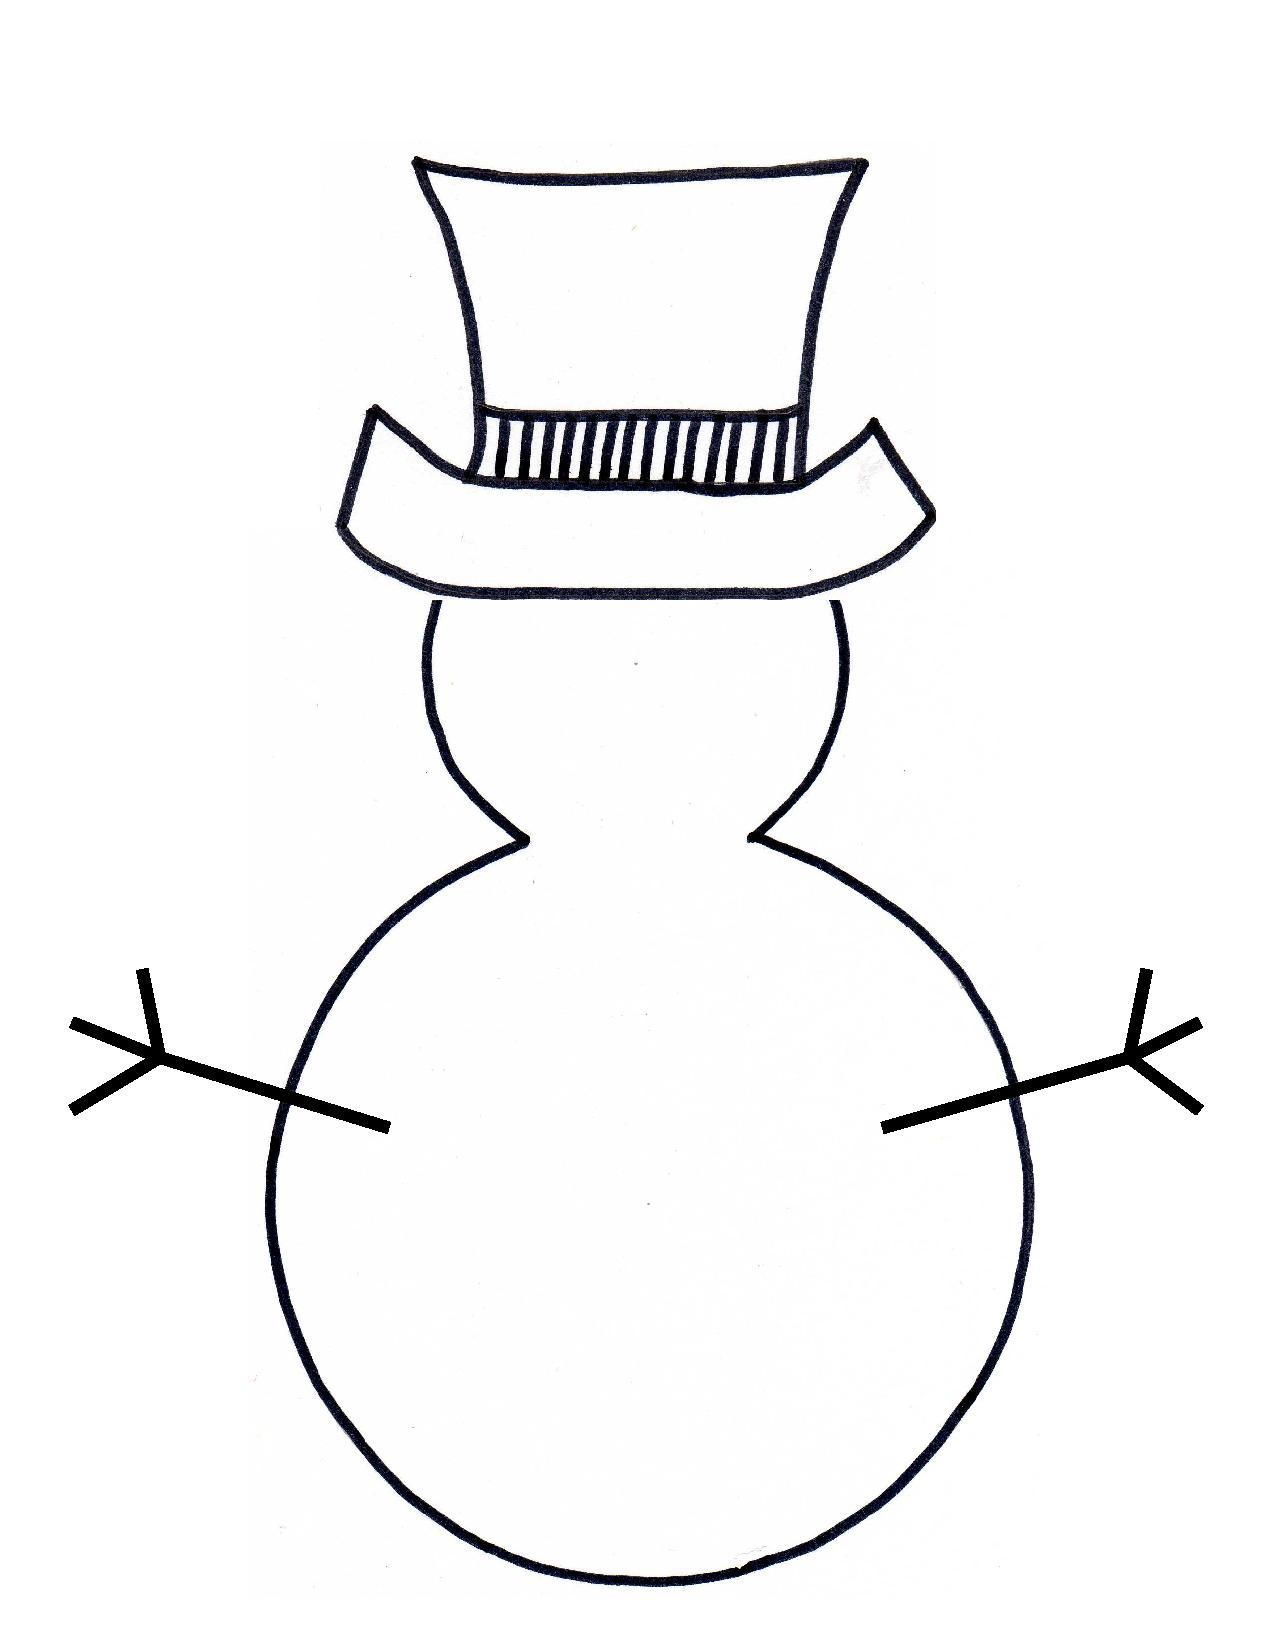 Snowman Outline Clipart Clipart Kid Preschool Christmas Crafts Preschool Christmas Winter Crafts